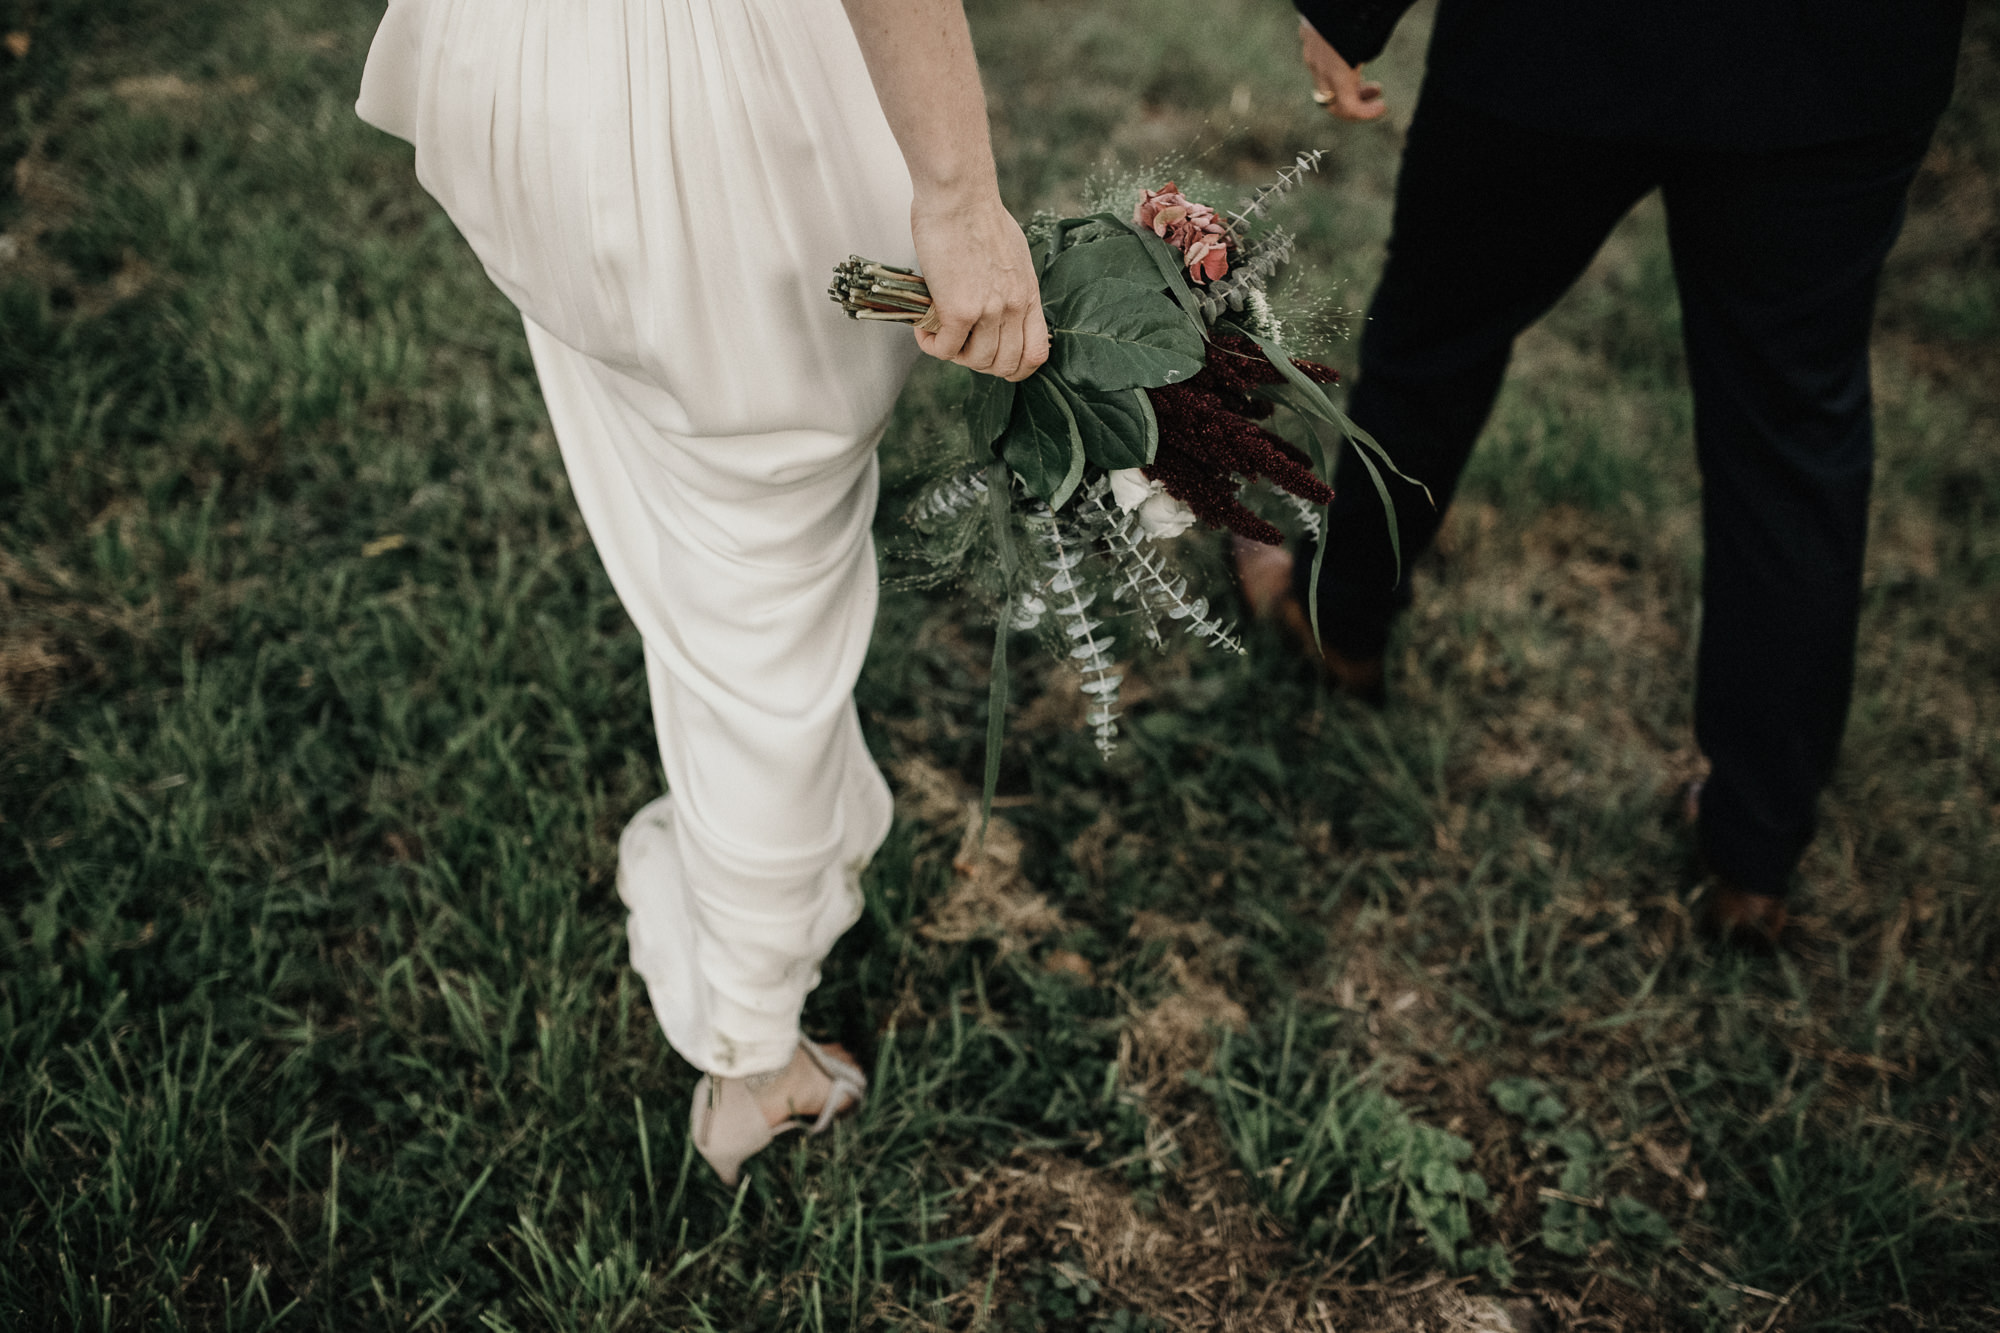 Wedding photographer, Provence, Luberon and South of France